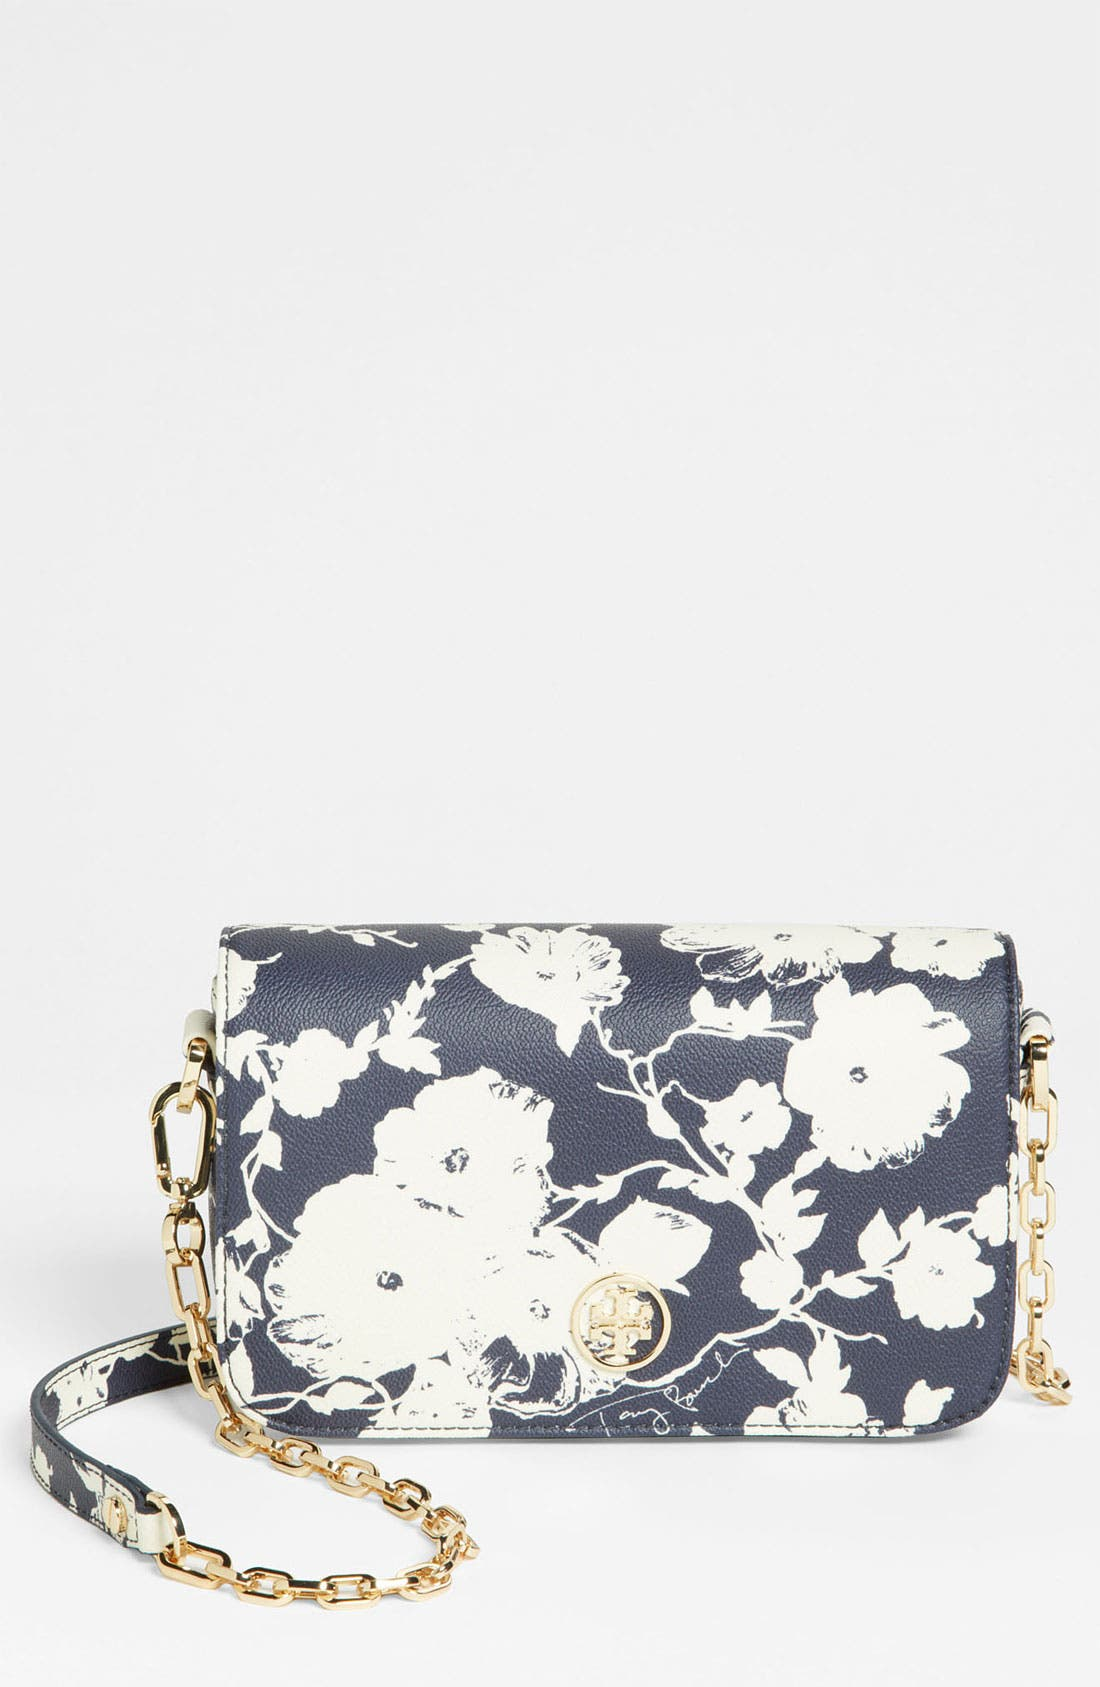 Alternate Image 1 Selected - Tory Burch 'Robinson - Mini' Print Leather Adjustable Crossbody Bag